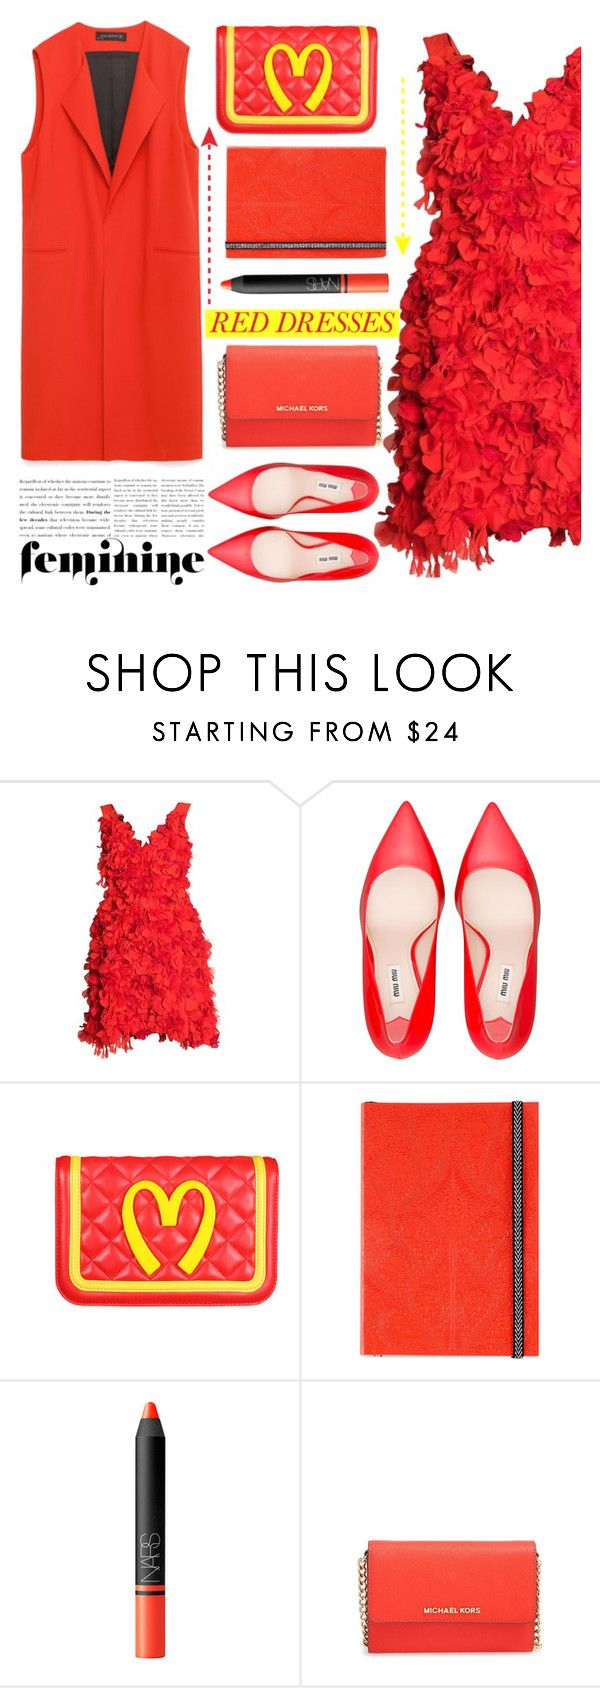 """""""No 310:Hot Red Dress"""" by lovepastel ❤ liked on Polyvore featuring Parlor, Miu Miu, Moschino, Christian Lacroix, NARS Cosmetics, MICHAEL Michael Kors, women's clothing, women, female and woman"""